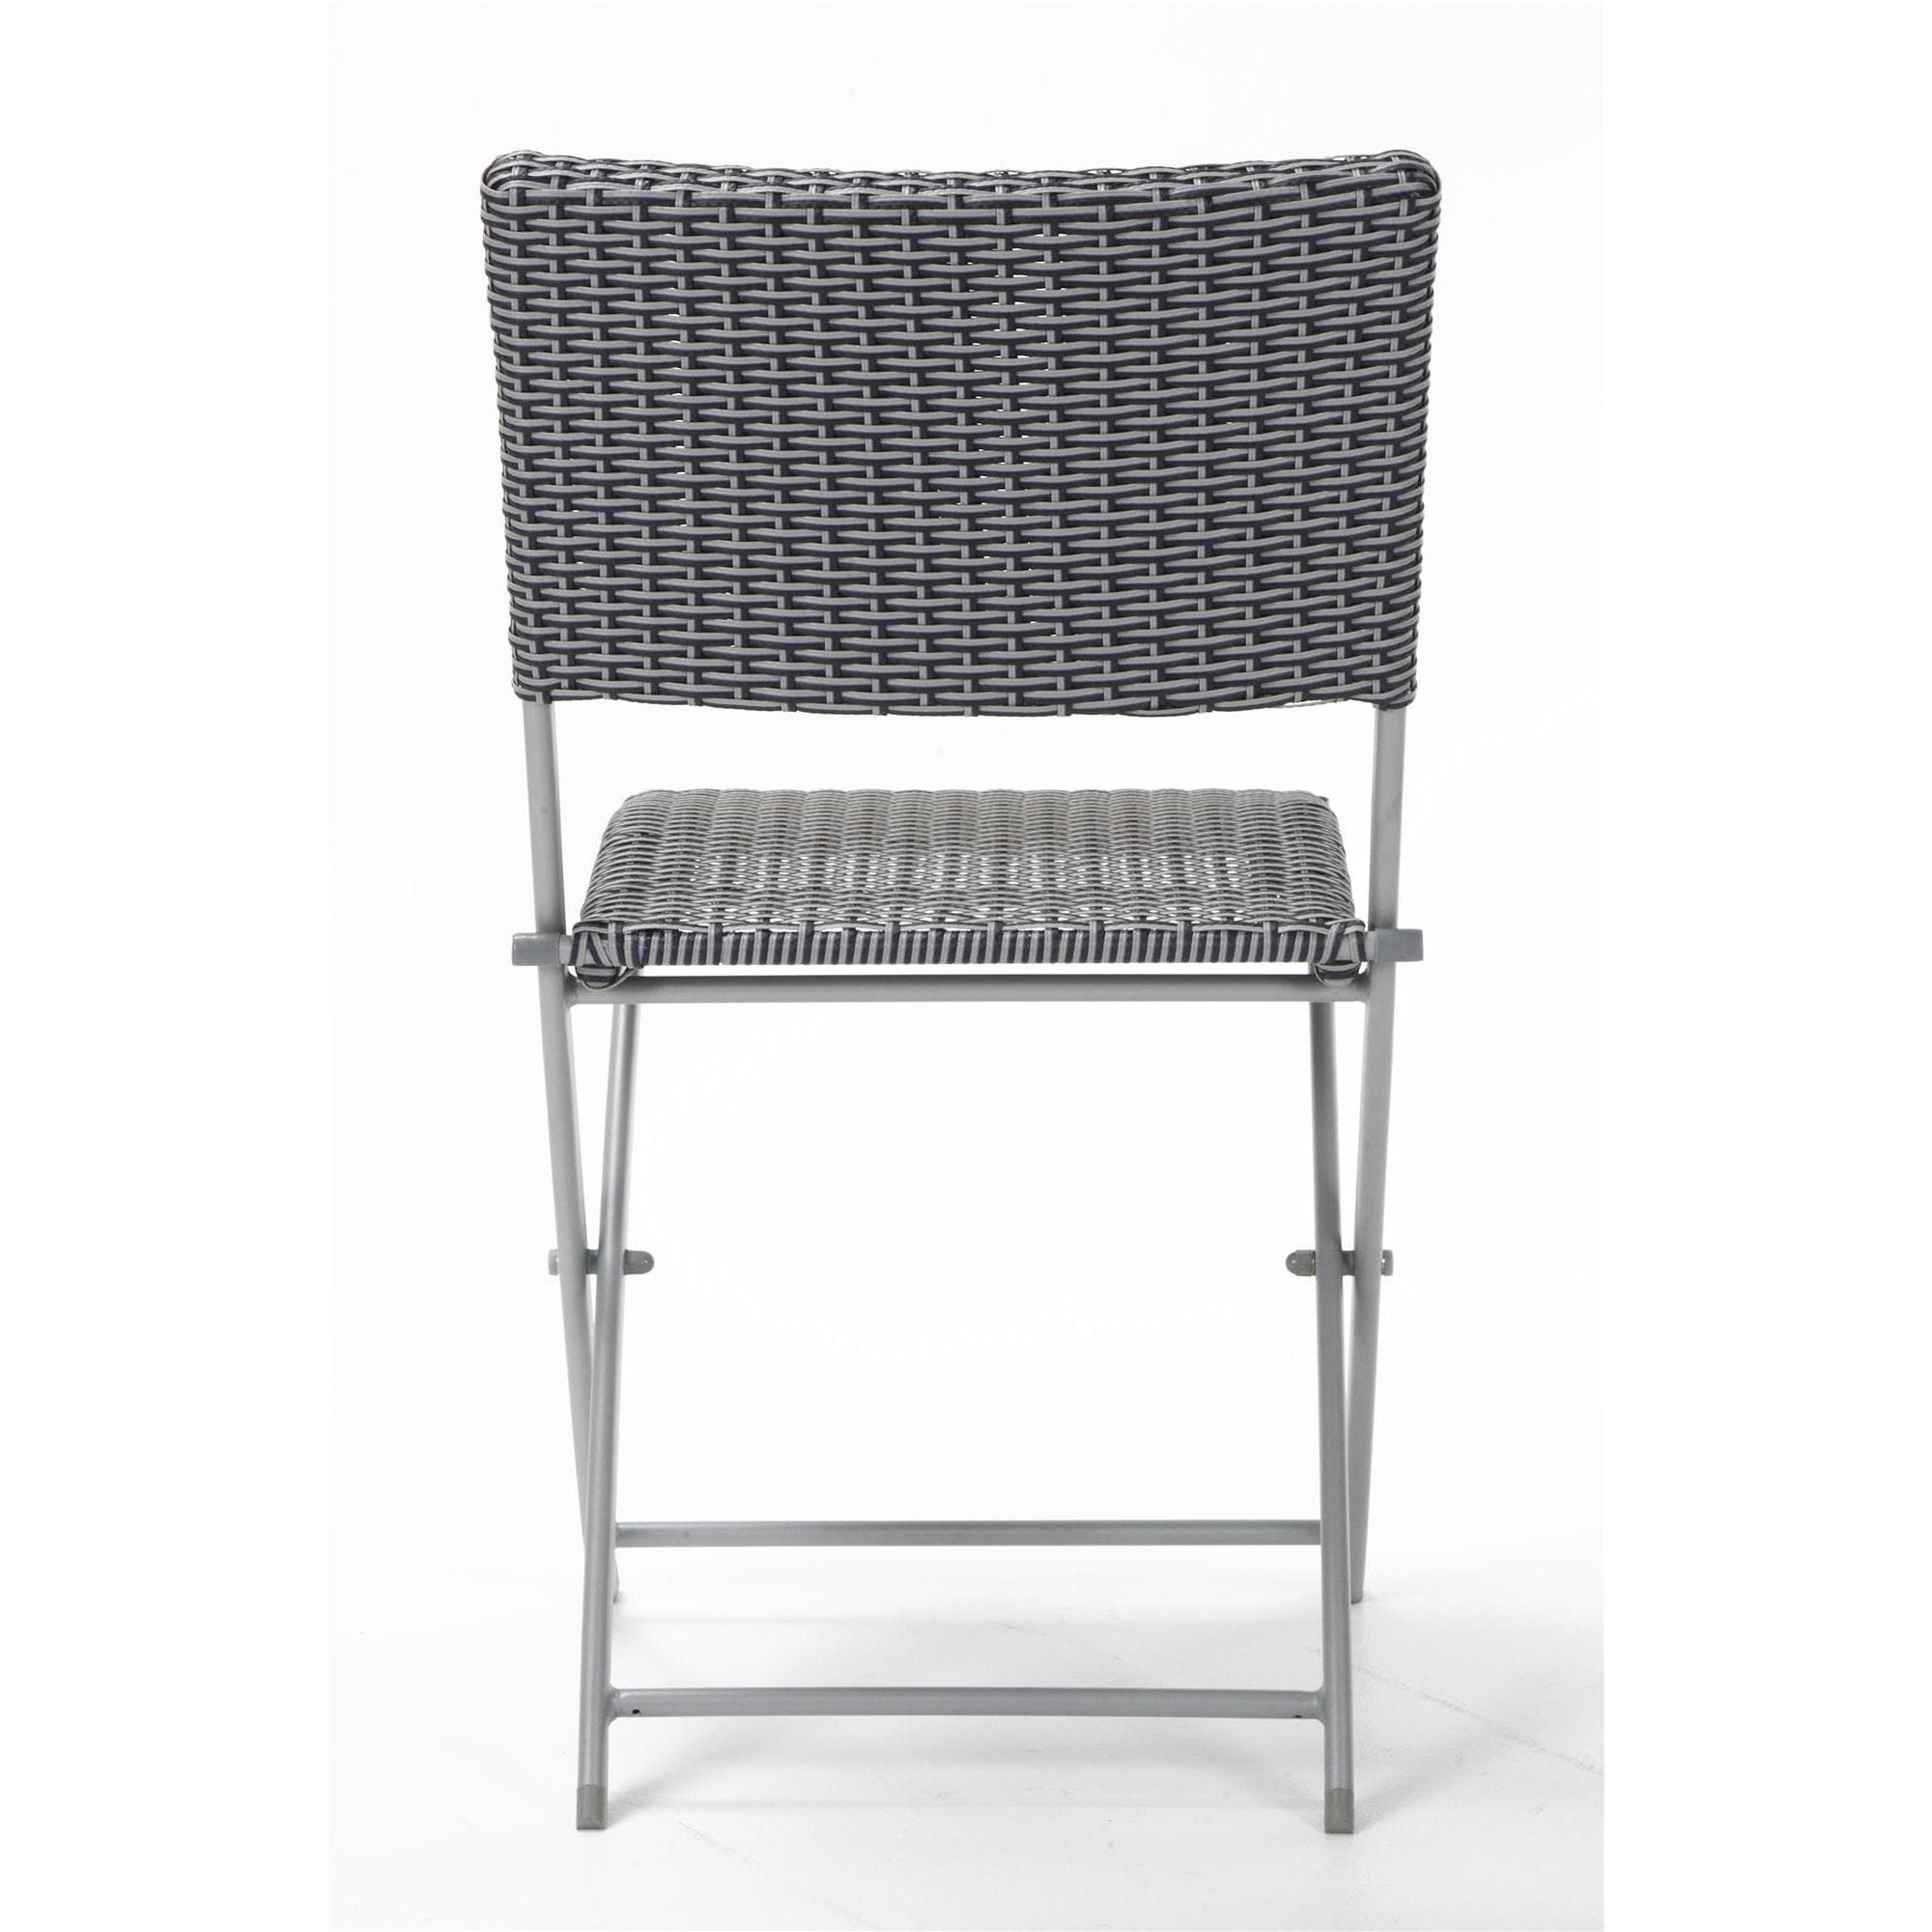 COSCO Outdoor Living Transitional 7 piece Delray Steel Woven